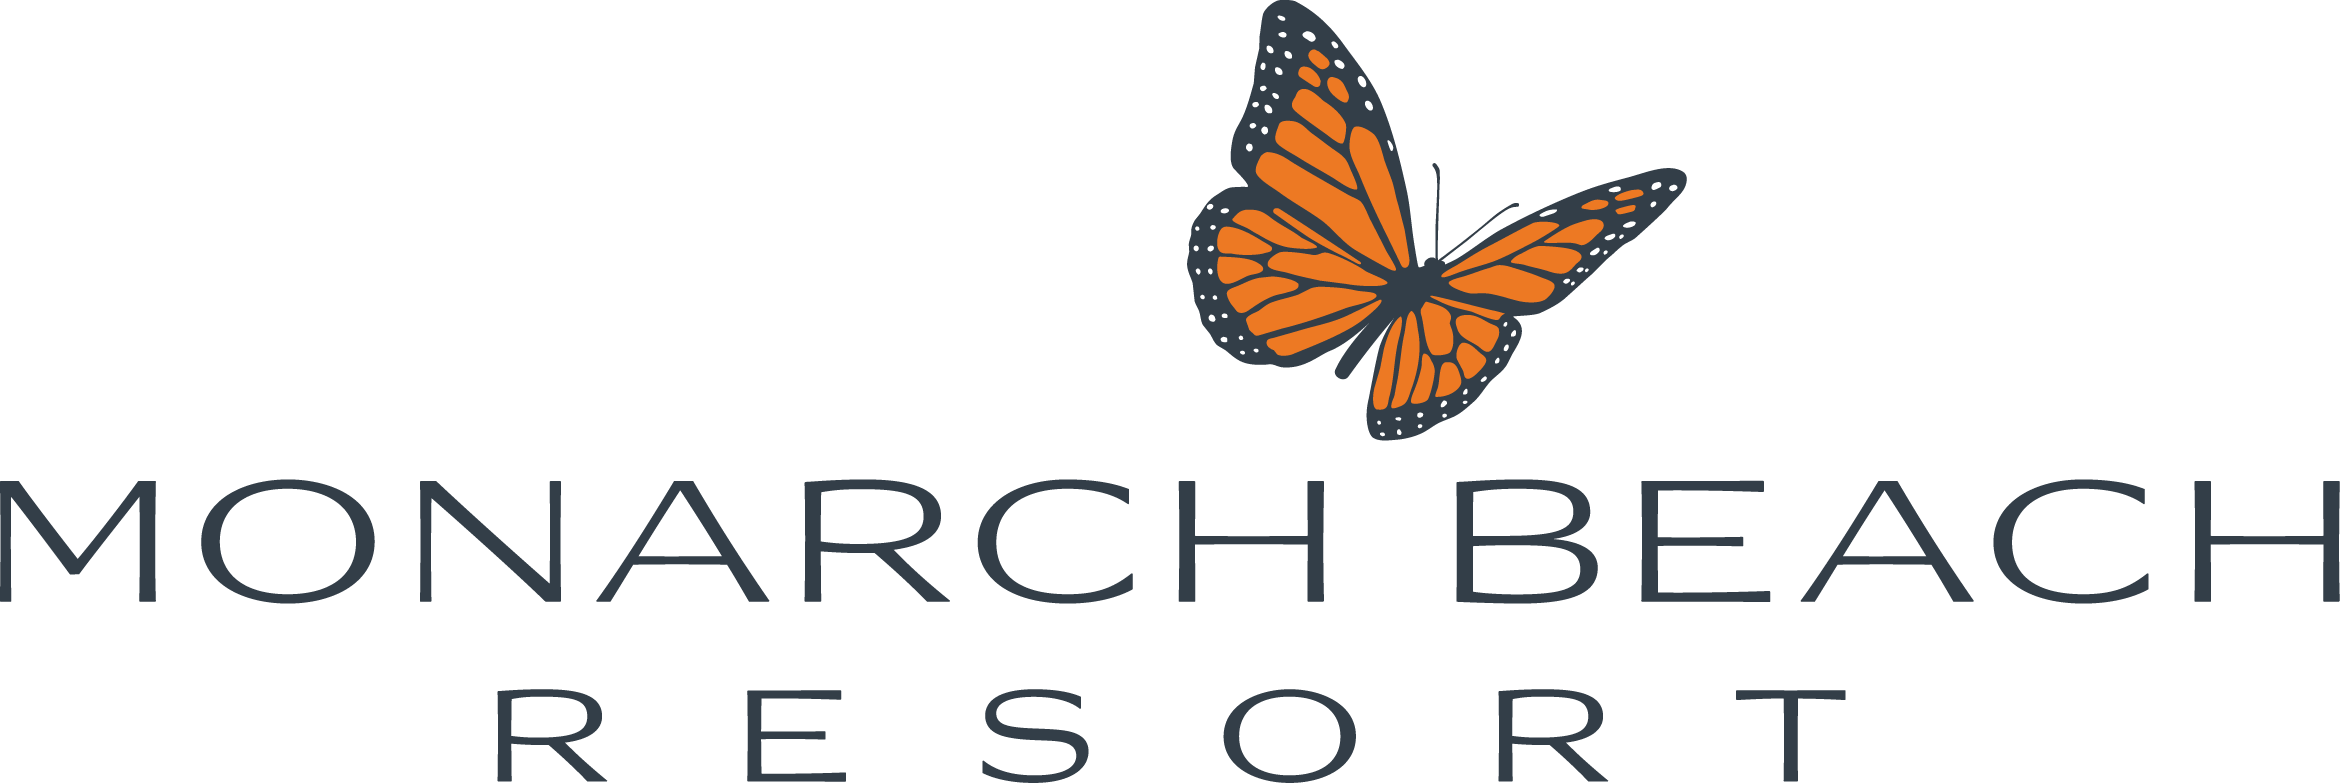 monarch beach resort logo